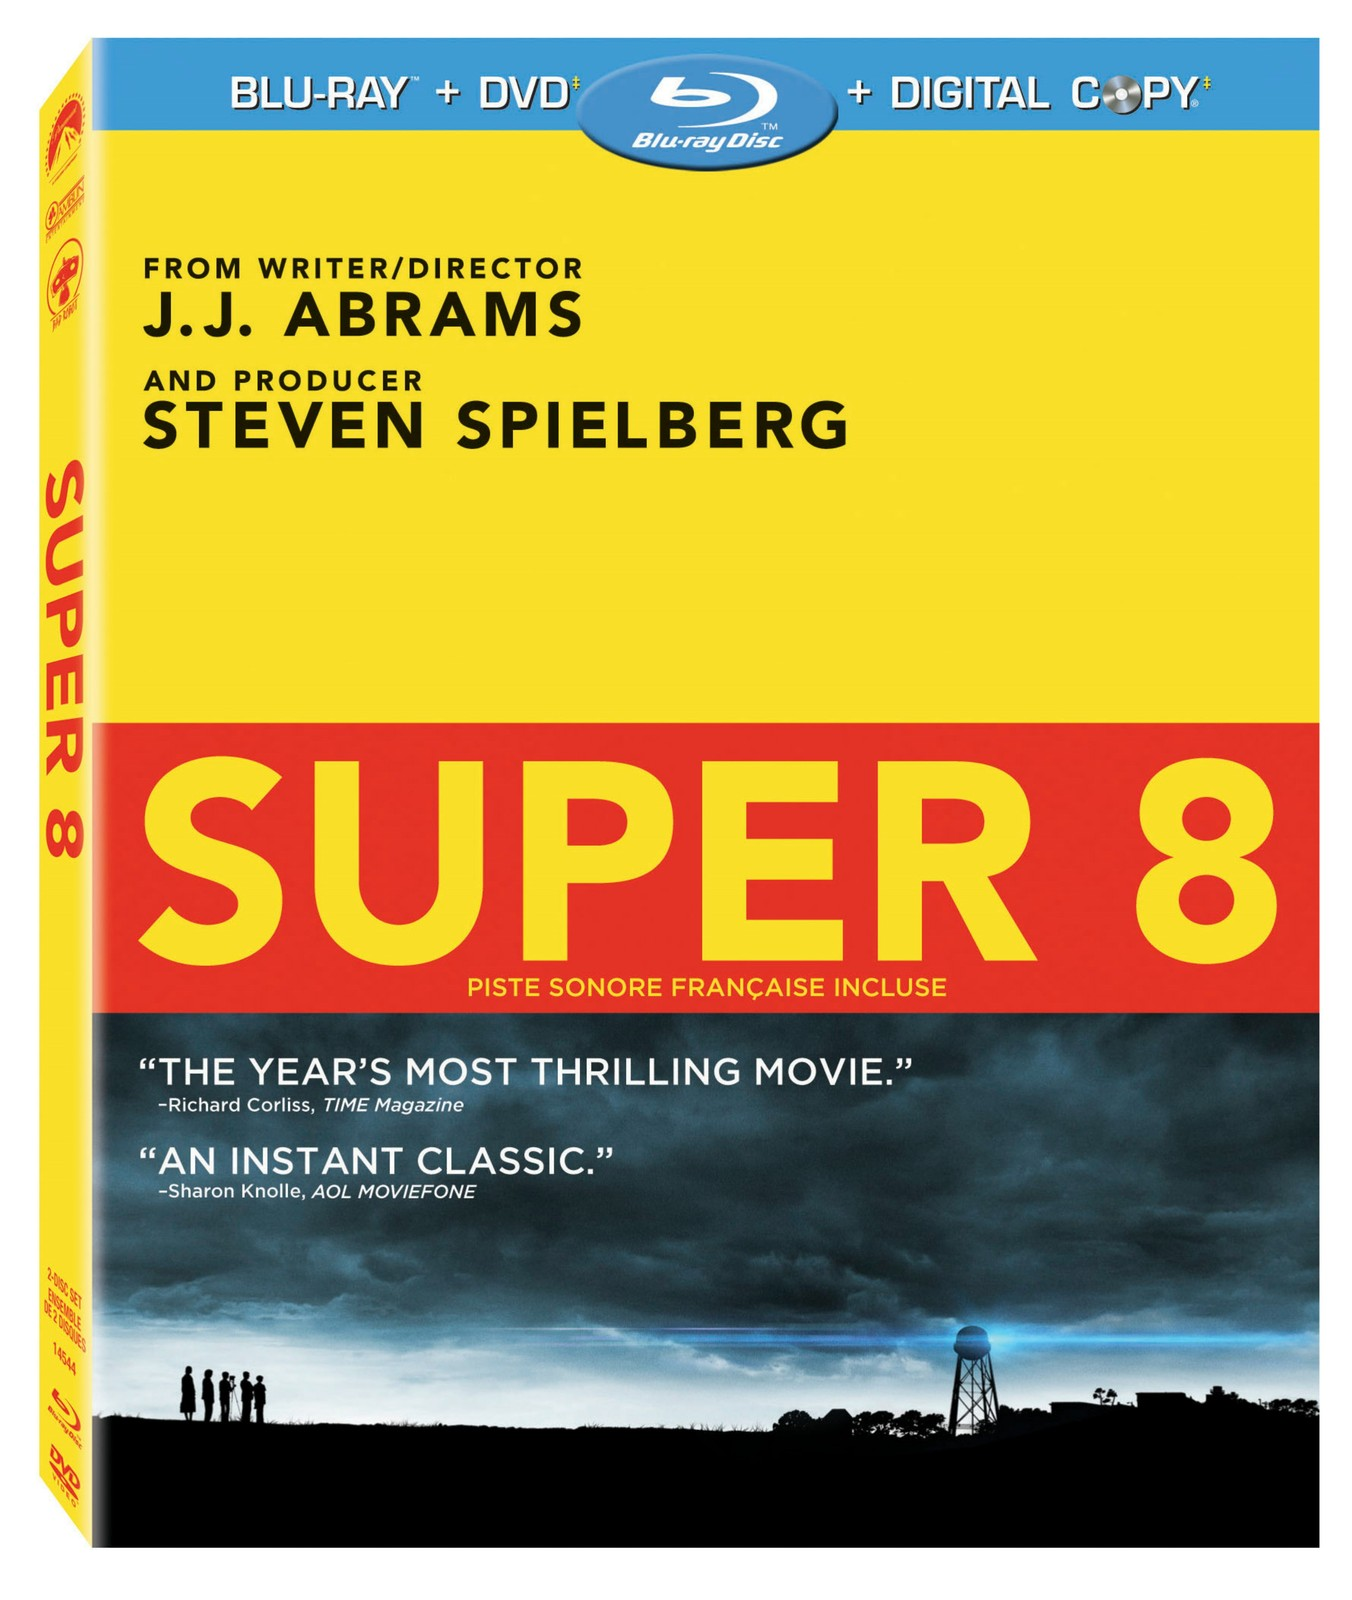 Super 8 (Blu-ray/DVD, 2011, 2-Disc Set)